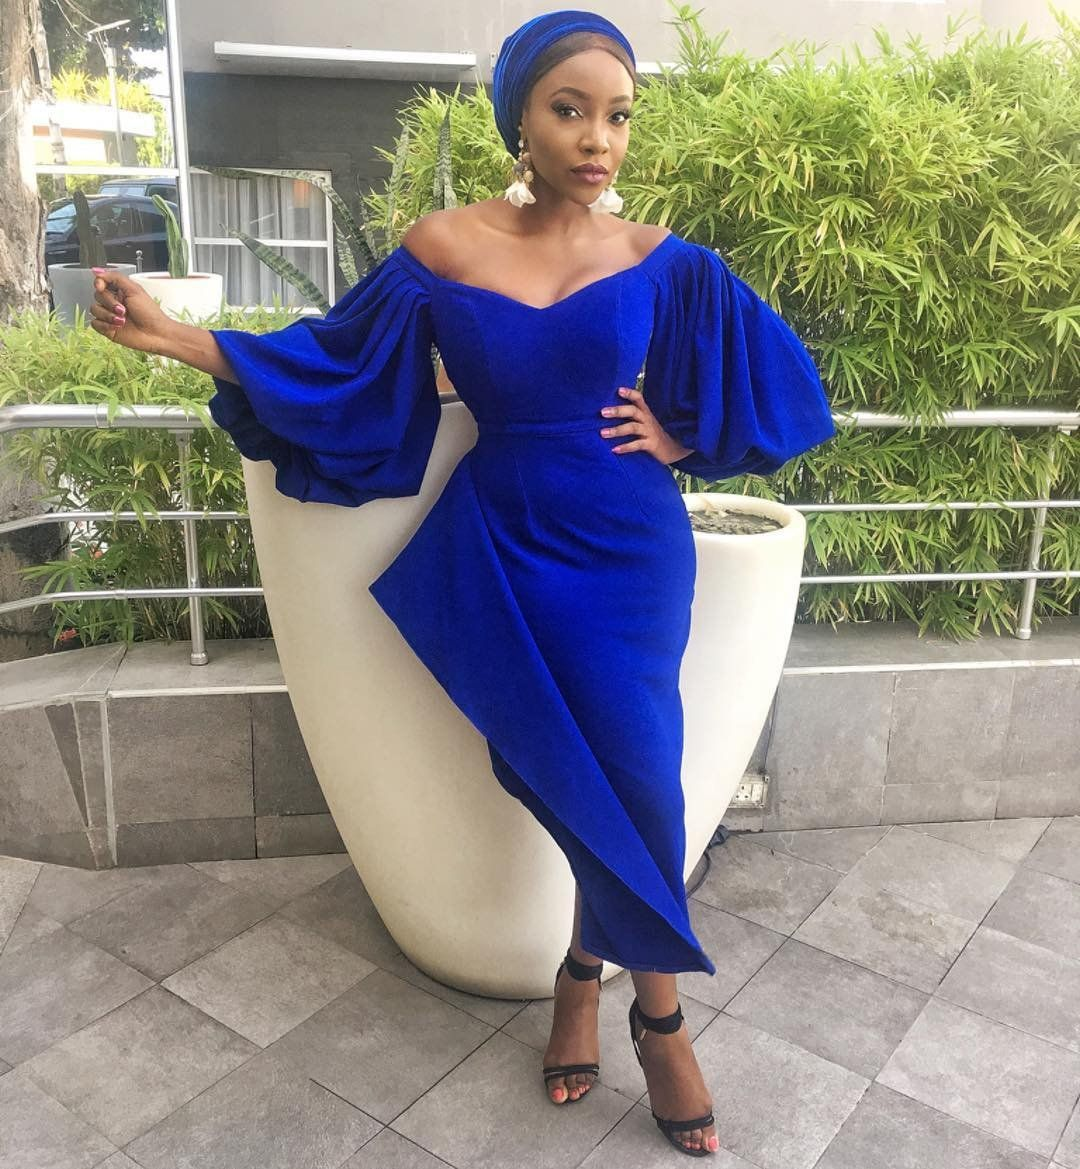 If You Are On The Hunt For The Perfect Dress To Wear To A Wedding Look No Further African Fashion Dresses African Print Fashion Dresses Wedding Attire Guest